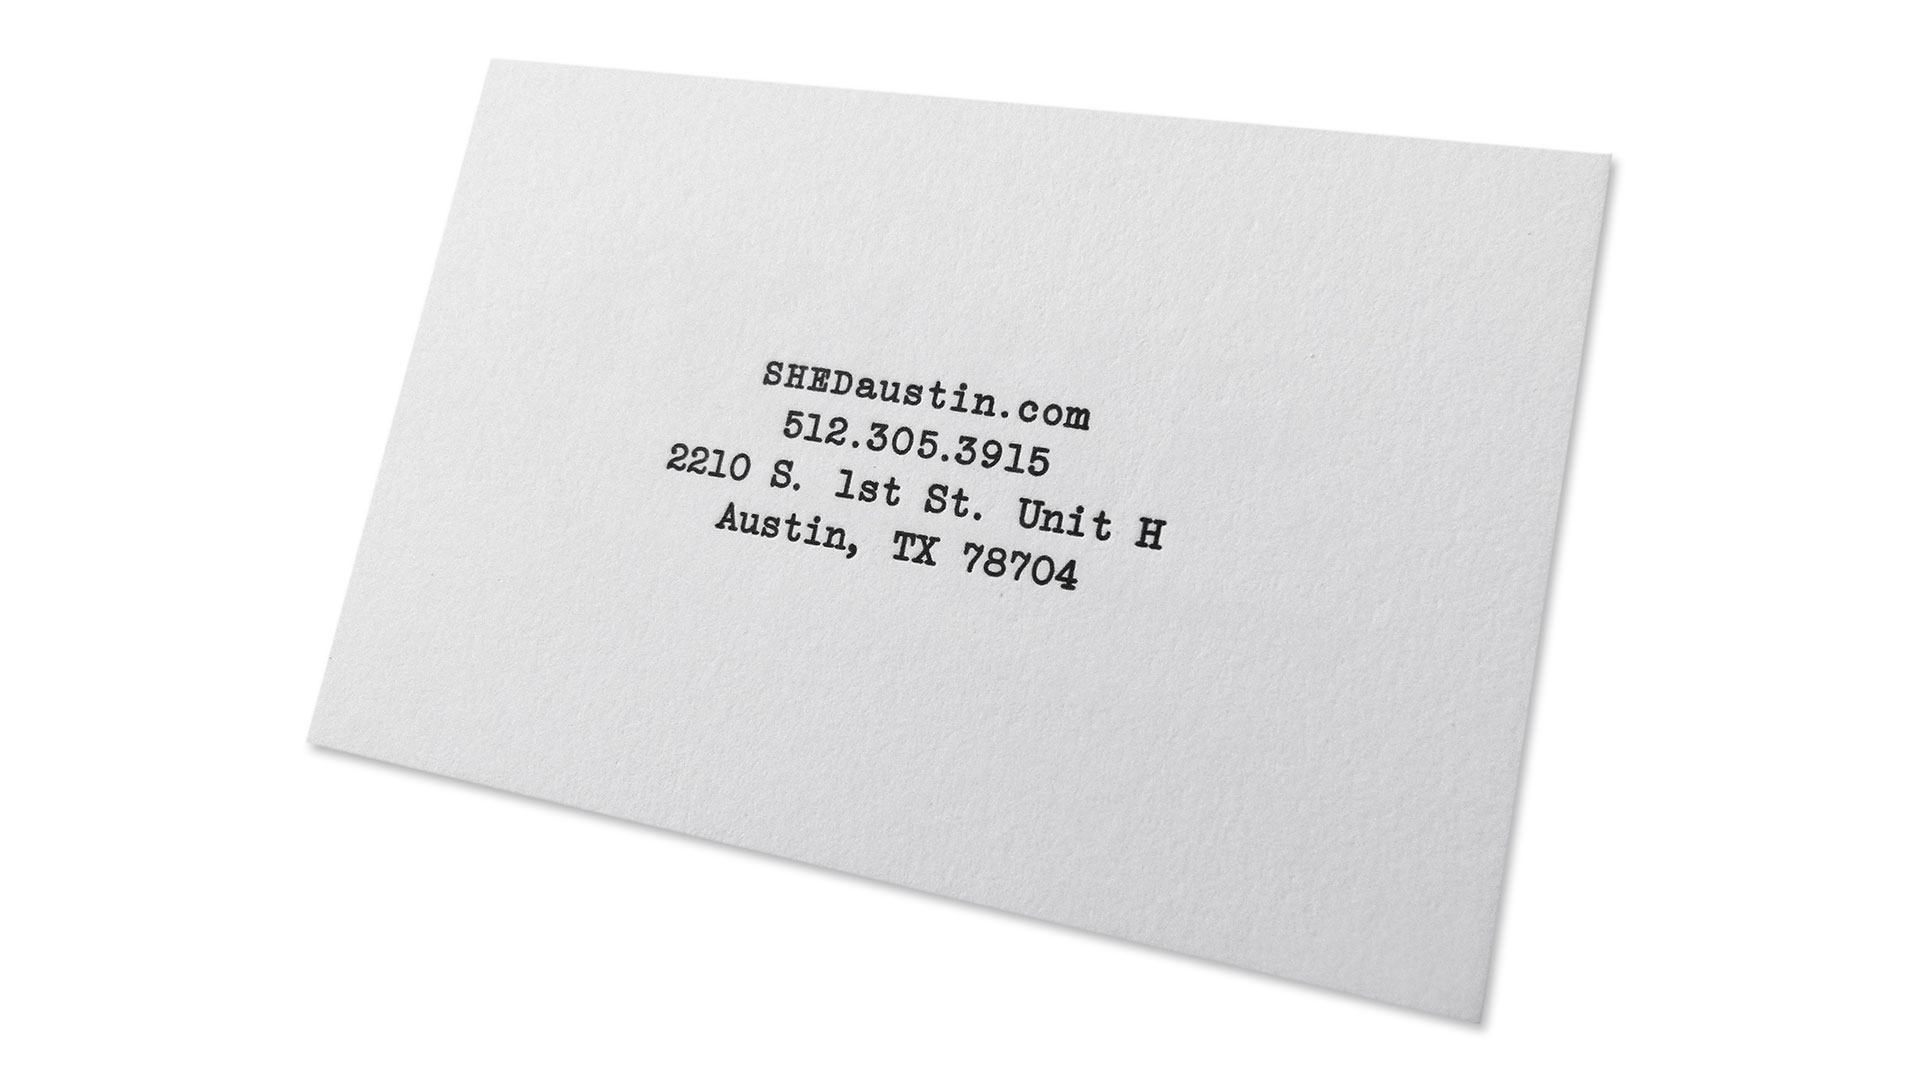 Color printing austin - Dimensions 3 3 X 2 16 Print Quantity 2 000 Production Time 15 Days Printing Method Letterpress Number Of Colors One Color Finishing And Binding Striped